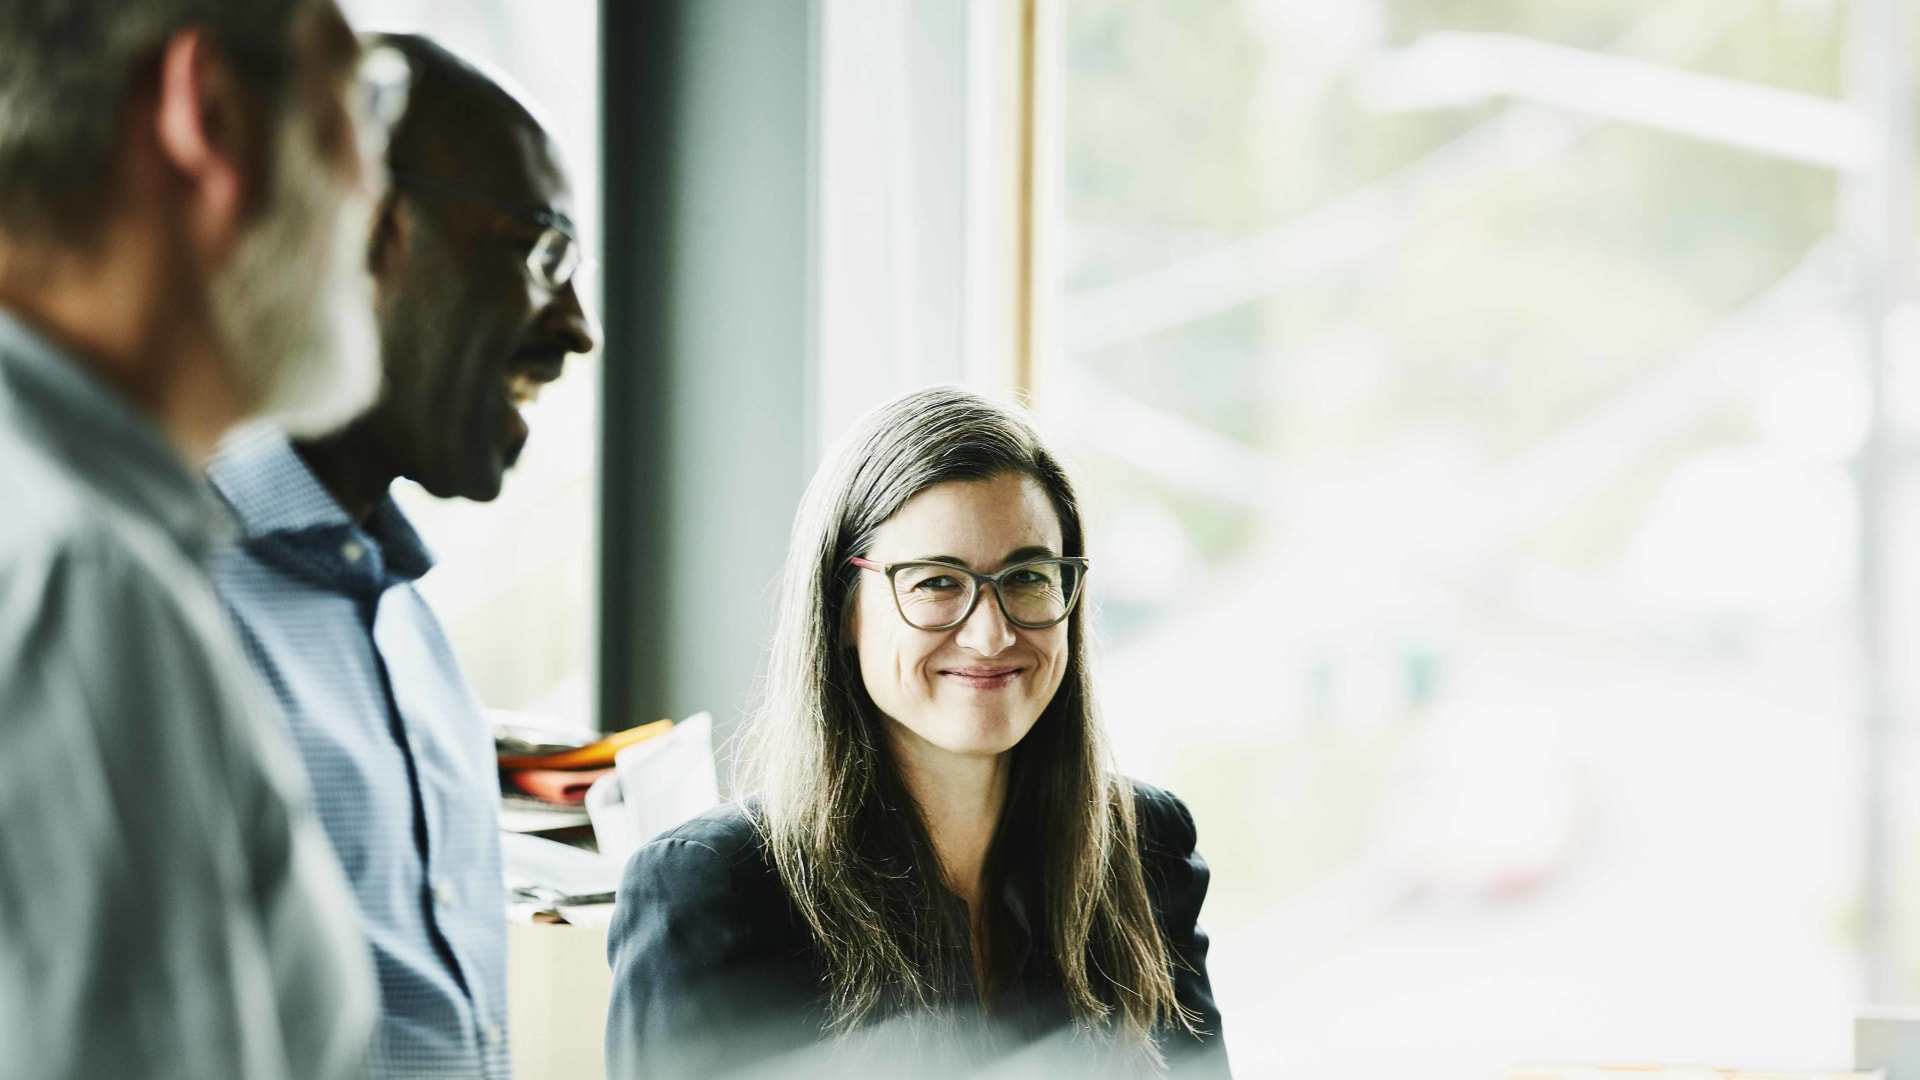 7 Simple Yet Effective Ways to Boost Employee Morale